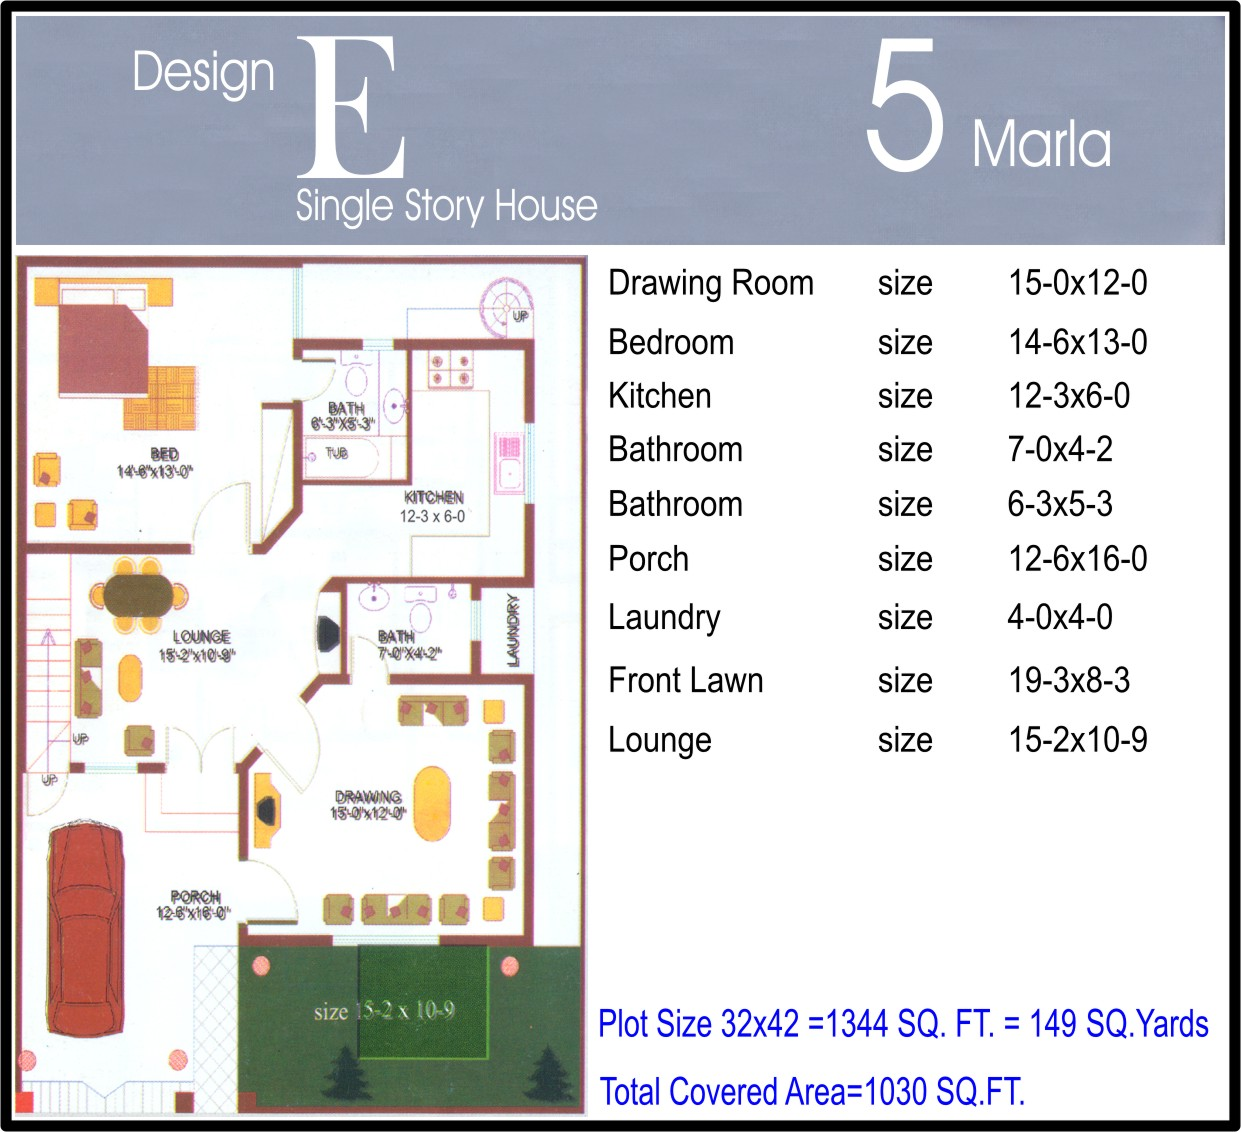 25 45 marla house map with 5 Marla House Plans on 7 Marla House Plans in addition Ford as well Eden gardens eden garden executive block house is available for sale 4902987 10765 1 likewise Plan For 22 Feet By 42 Feet Plot  Plot Size 103 Square Yards  Plan Code 1328 together with Bahria nasheman bahria nasheman zinia brand new house is available for sale 4985440 4511 1.